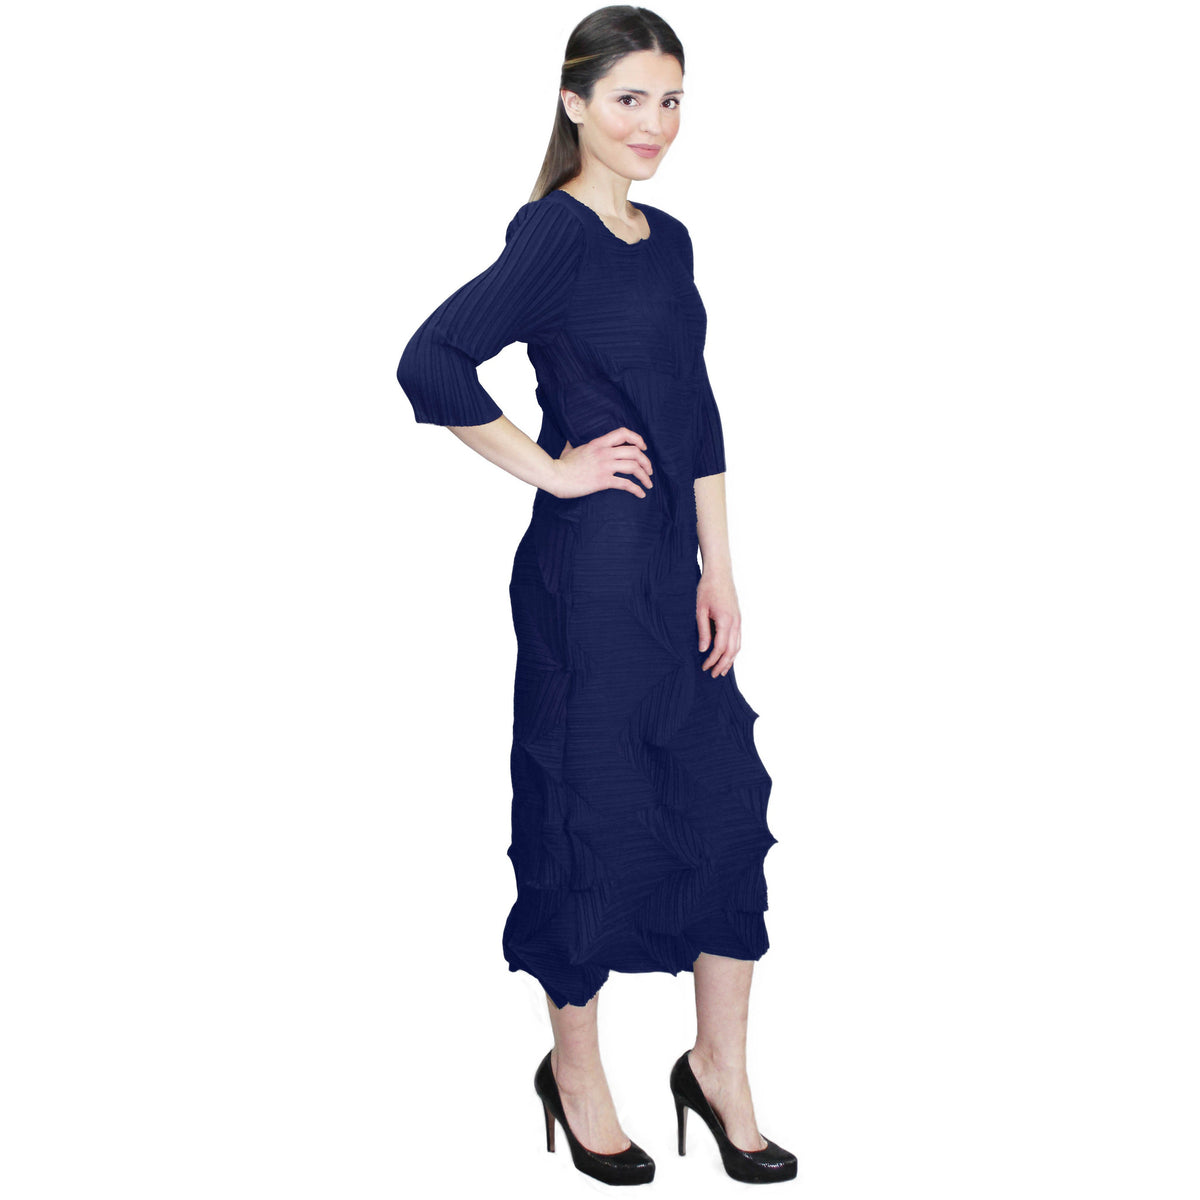 Origami Crinkle Dress - Navy